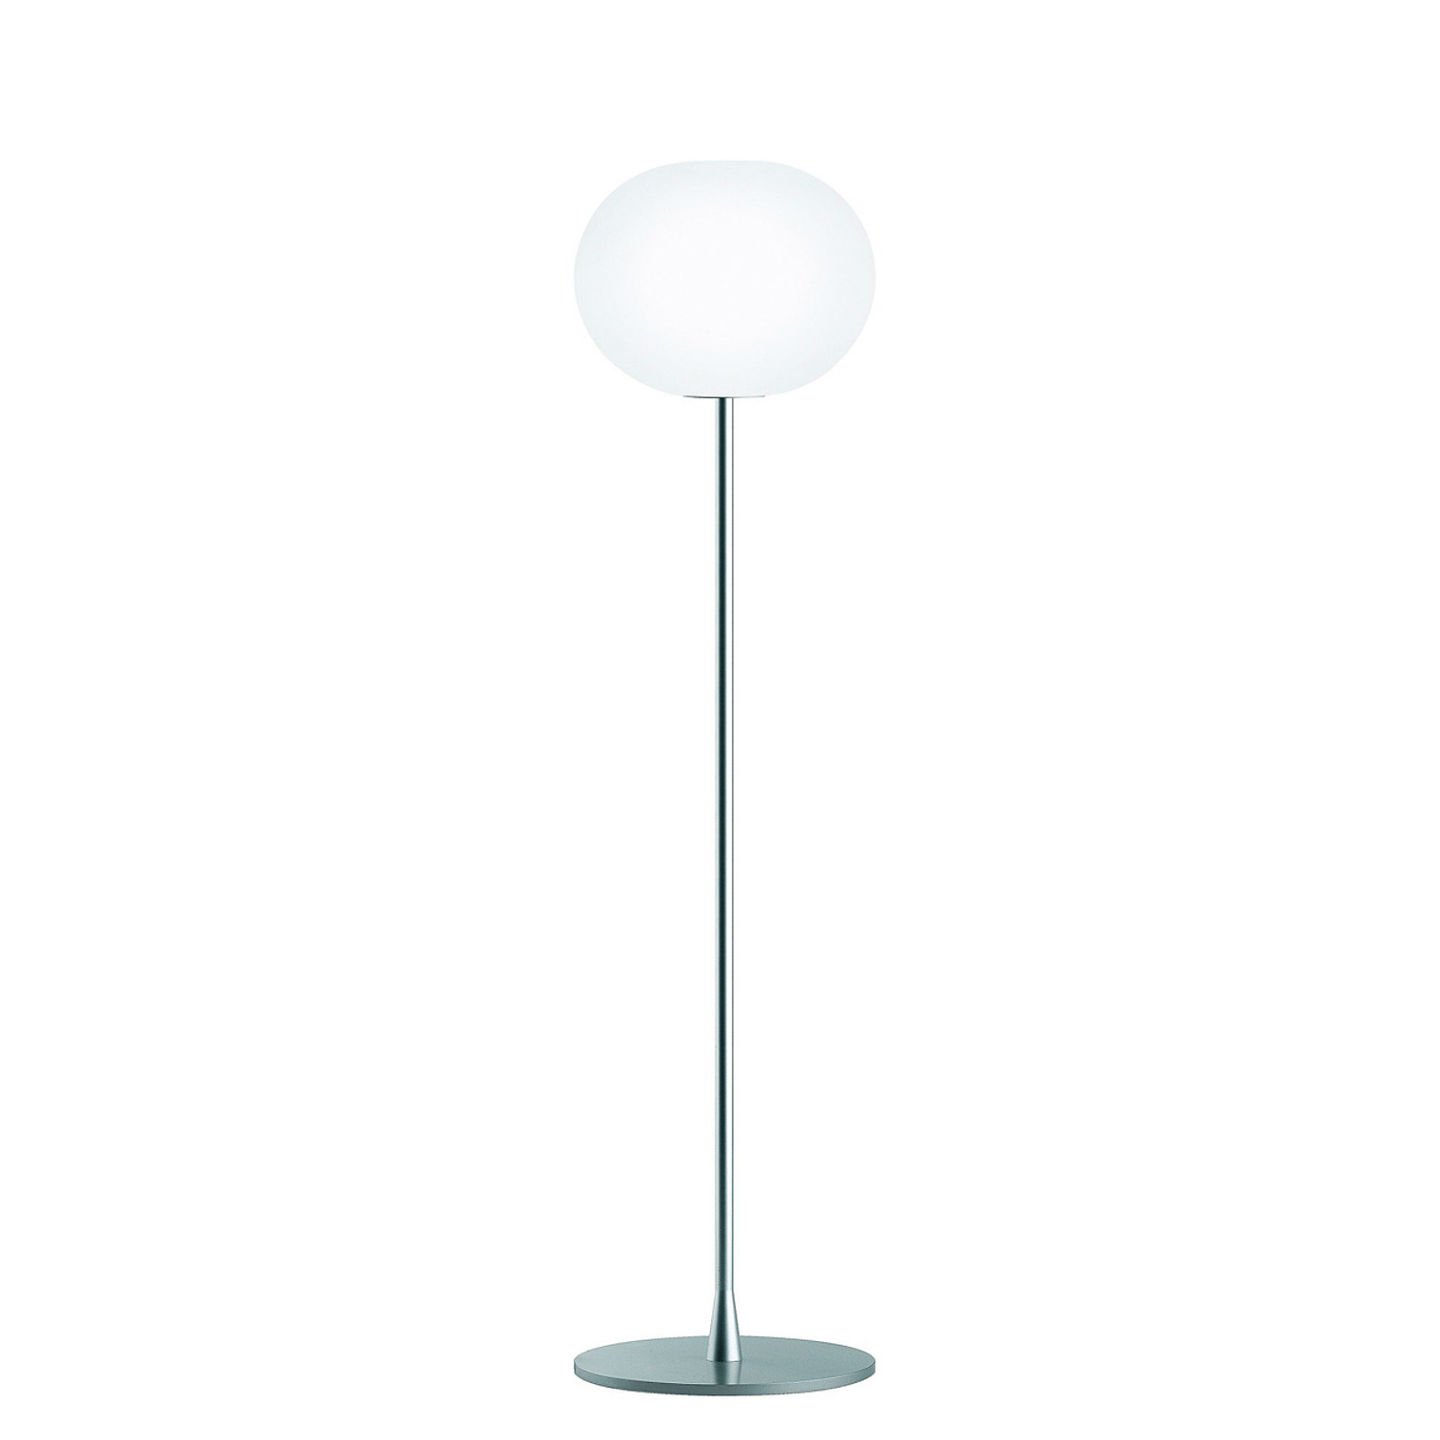 Glo Ball F3 lámpara de Pie 185cm E27 205W - Plata mate